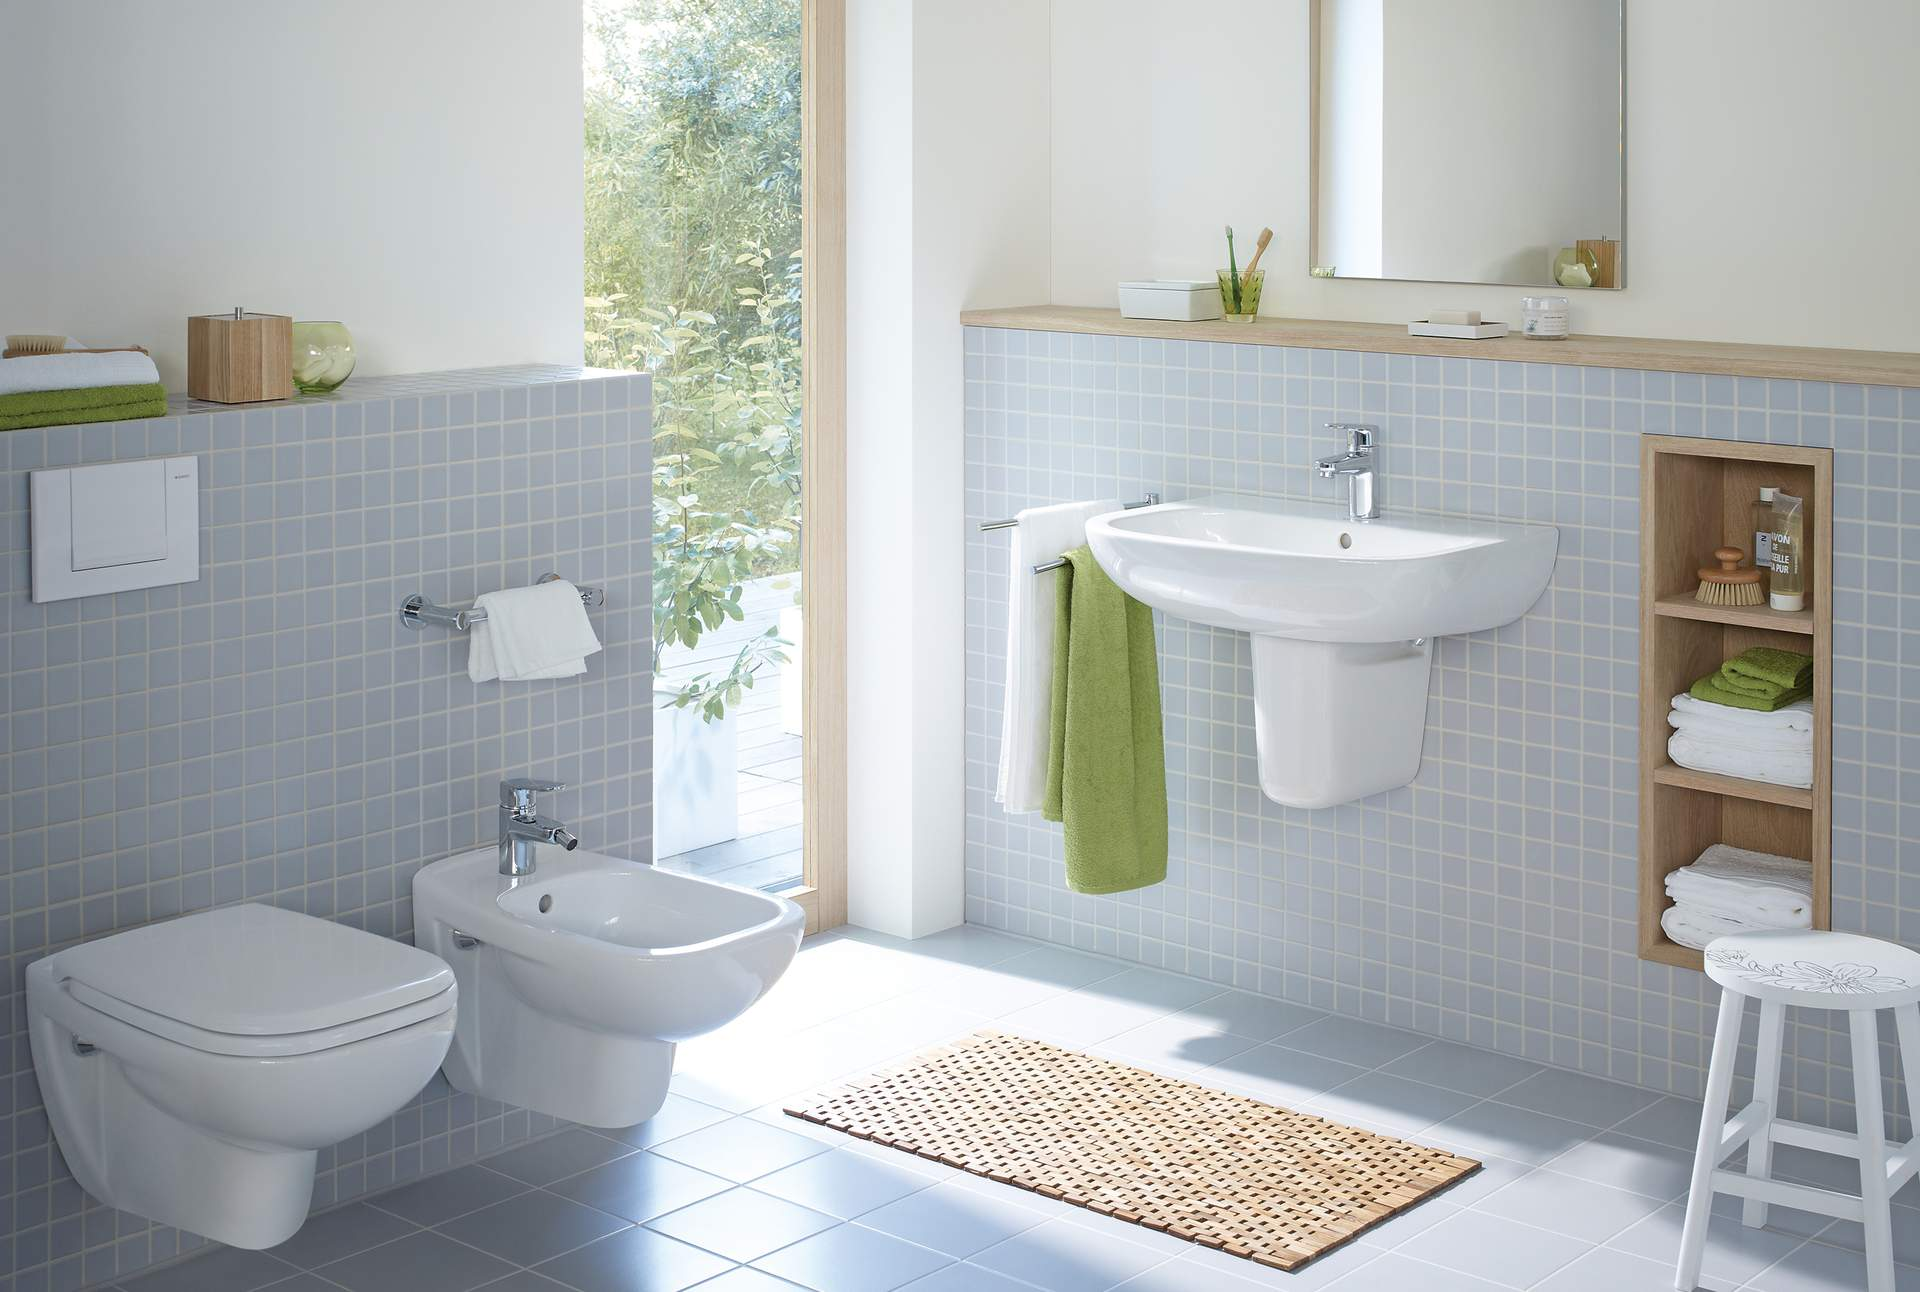 Duravit D-Code: Bathtubs, bathroom sinks & more | Duravit